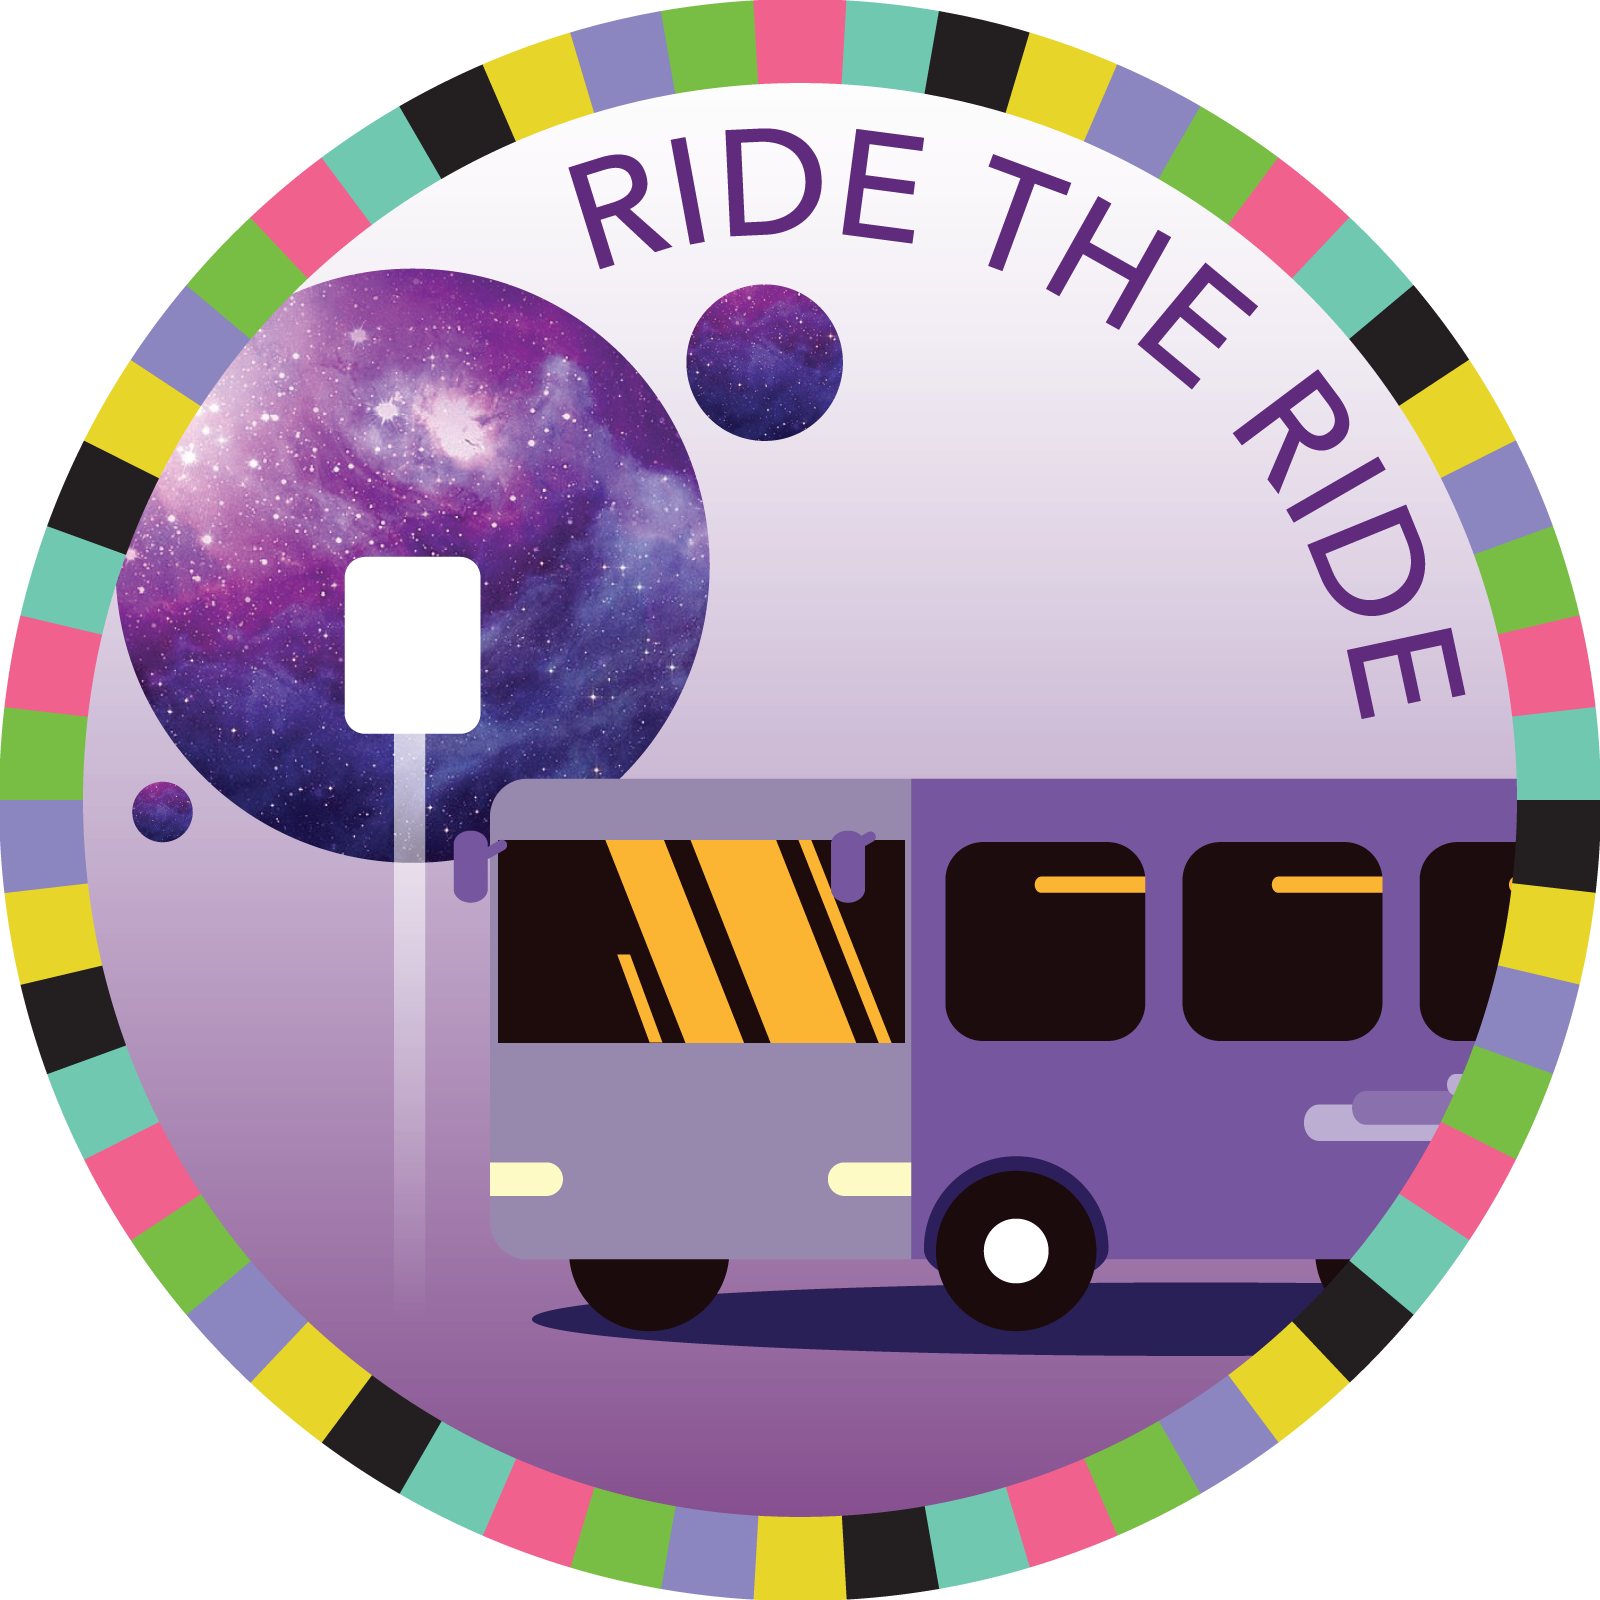 Ride The Ride image